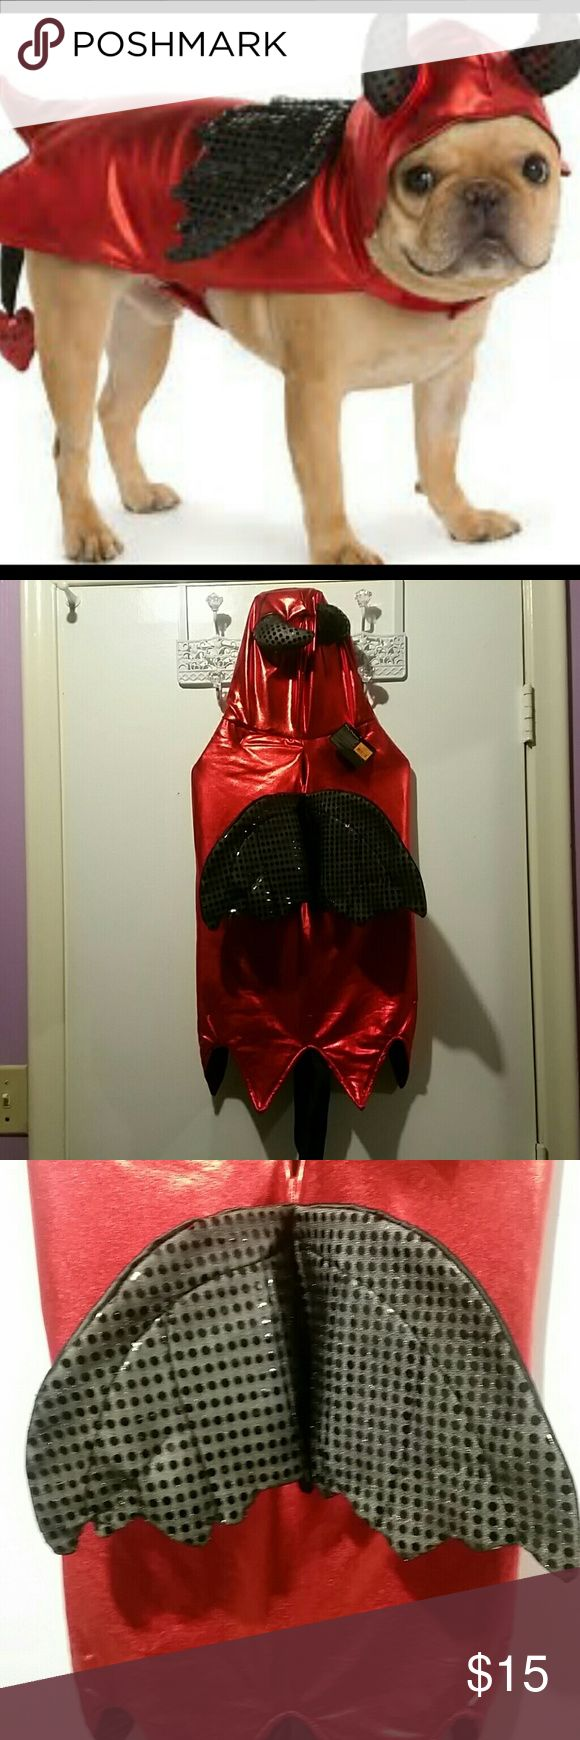 "Devil Costume Got this for my friend but she lost weight so it doesn't fit her anymore.  Brand New With Tags never worn.  Velcro closure at the neck and torso.  Metallic red with black sequins.  Measures 23"" from collar to tip of cape, not counting the tail.  sequin heart accent on the tail.  A show stopper.  Great for Halloween or dress up time with your master. Thrills and Chills Costumes Halloween"